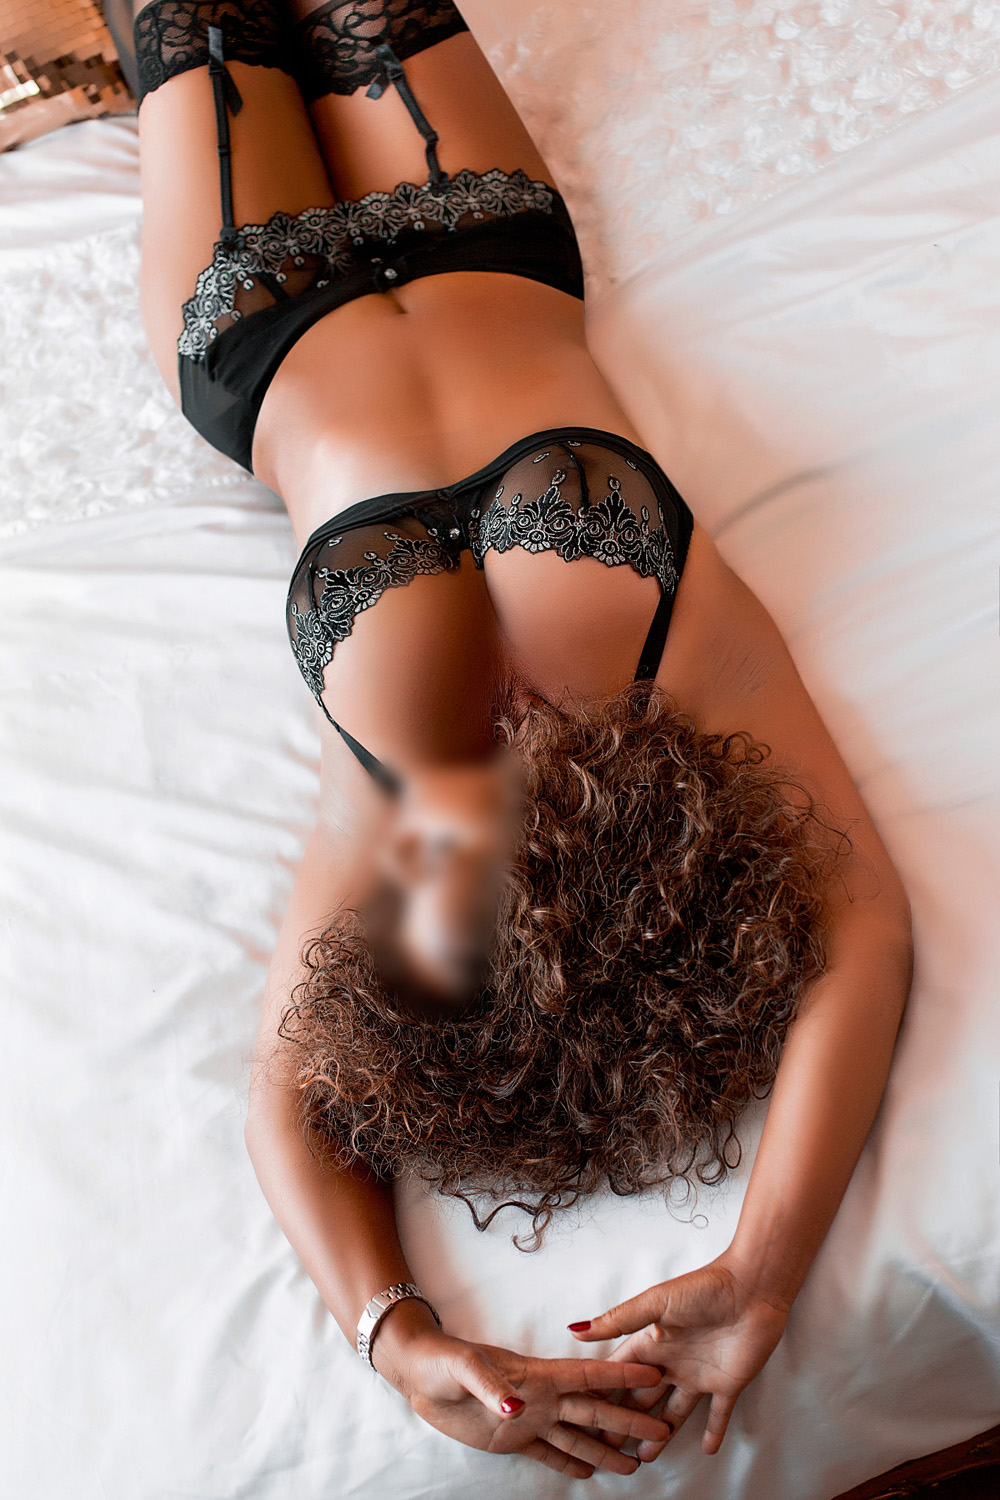 escort photos ebony escorts